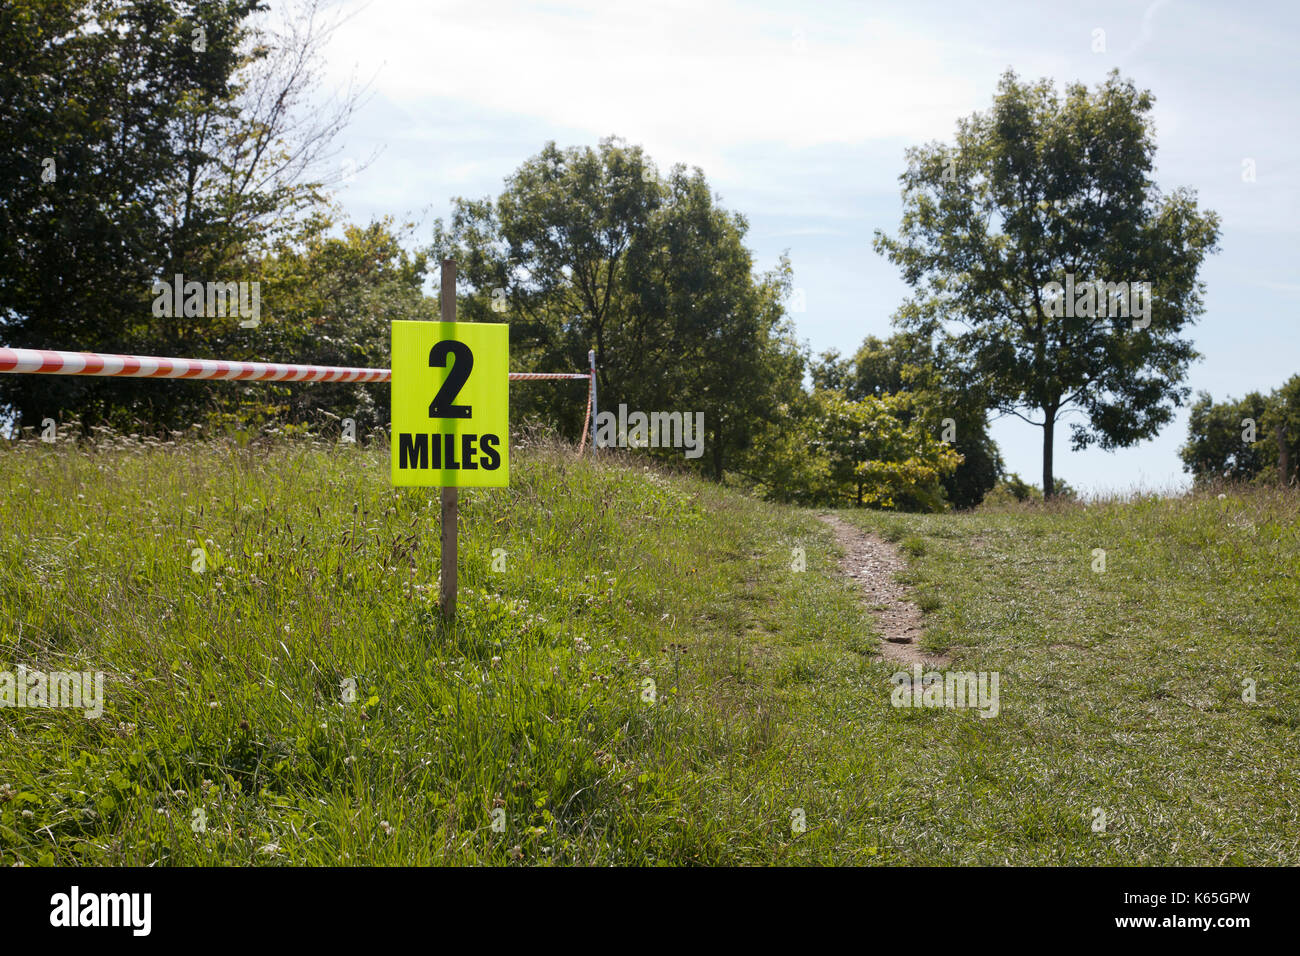 2 Miles to go for Race in Park - Stock Image